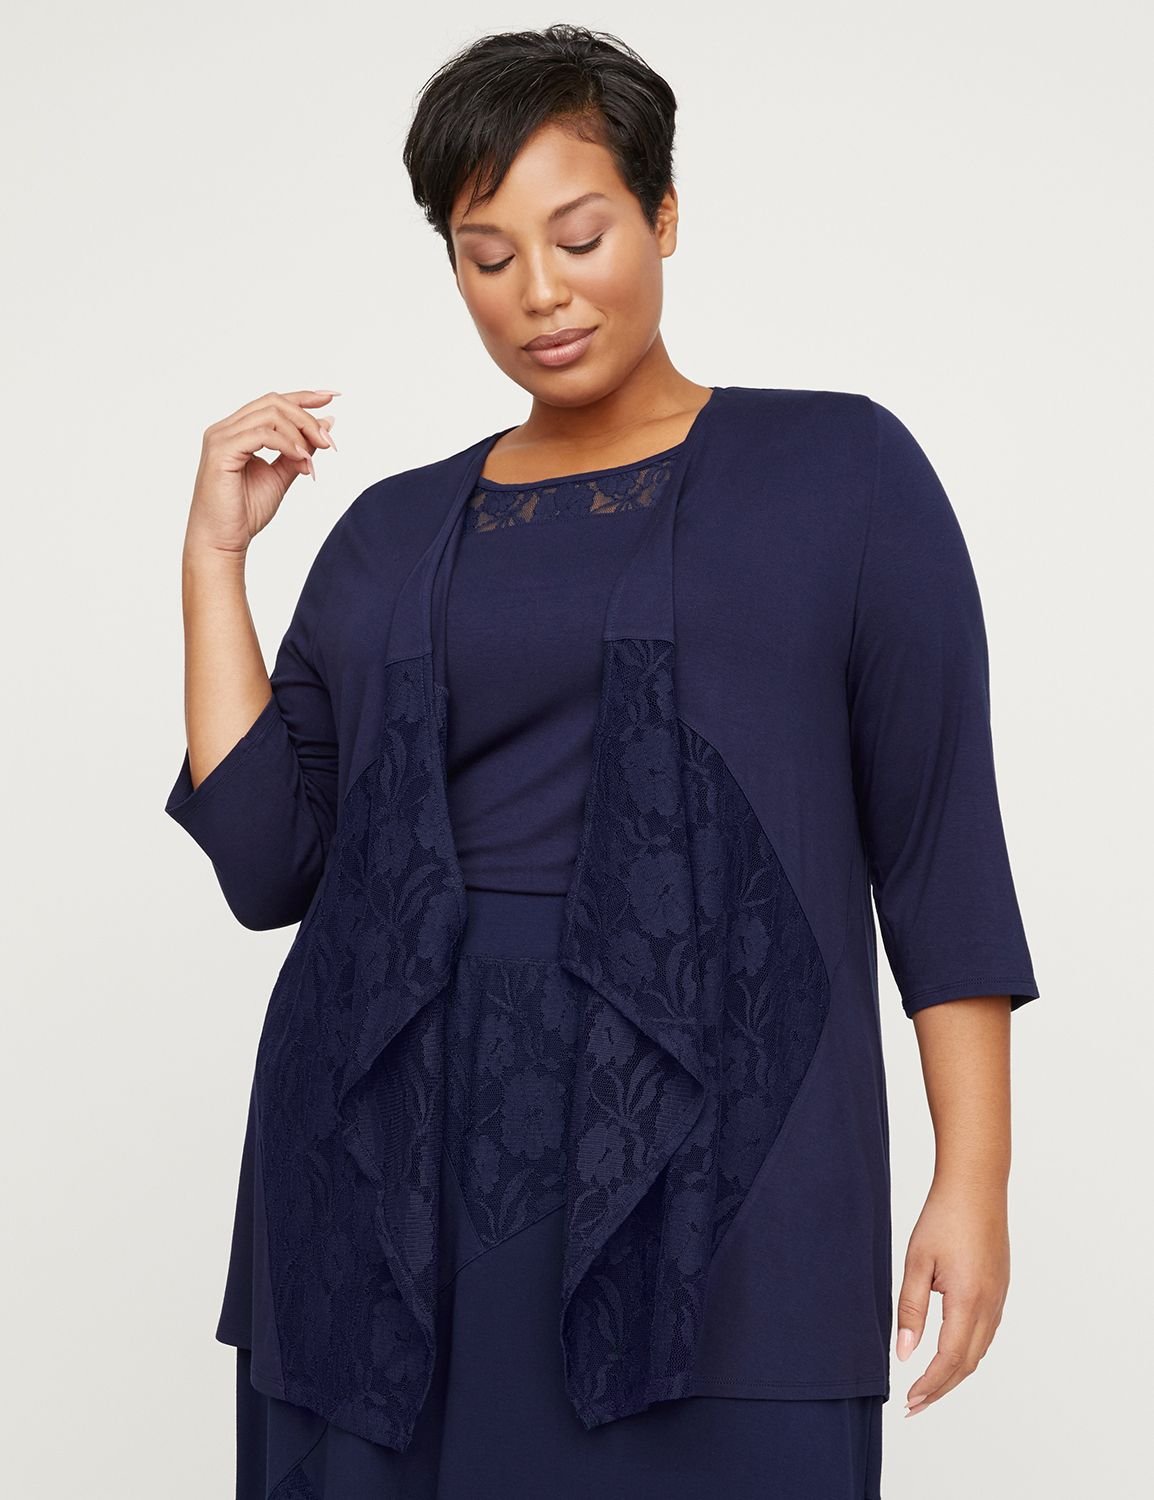 AnyWear Navy Patchwork Lace Cascade